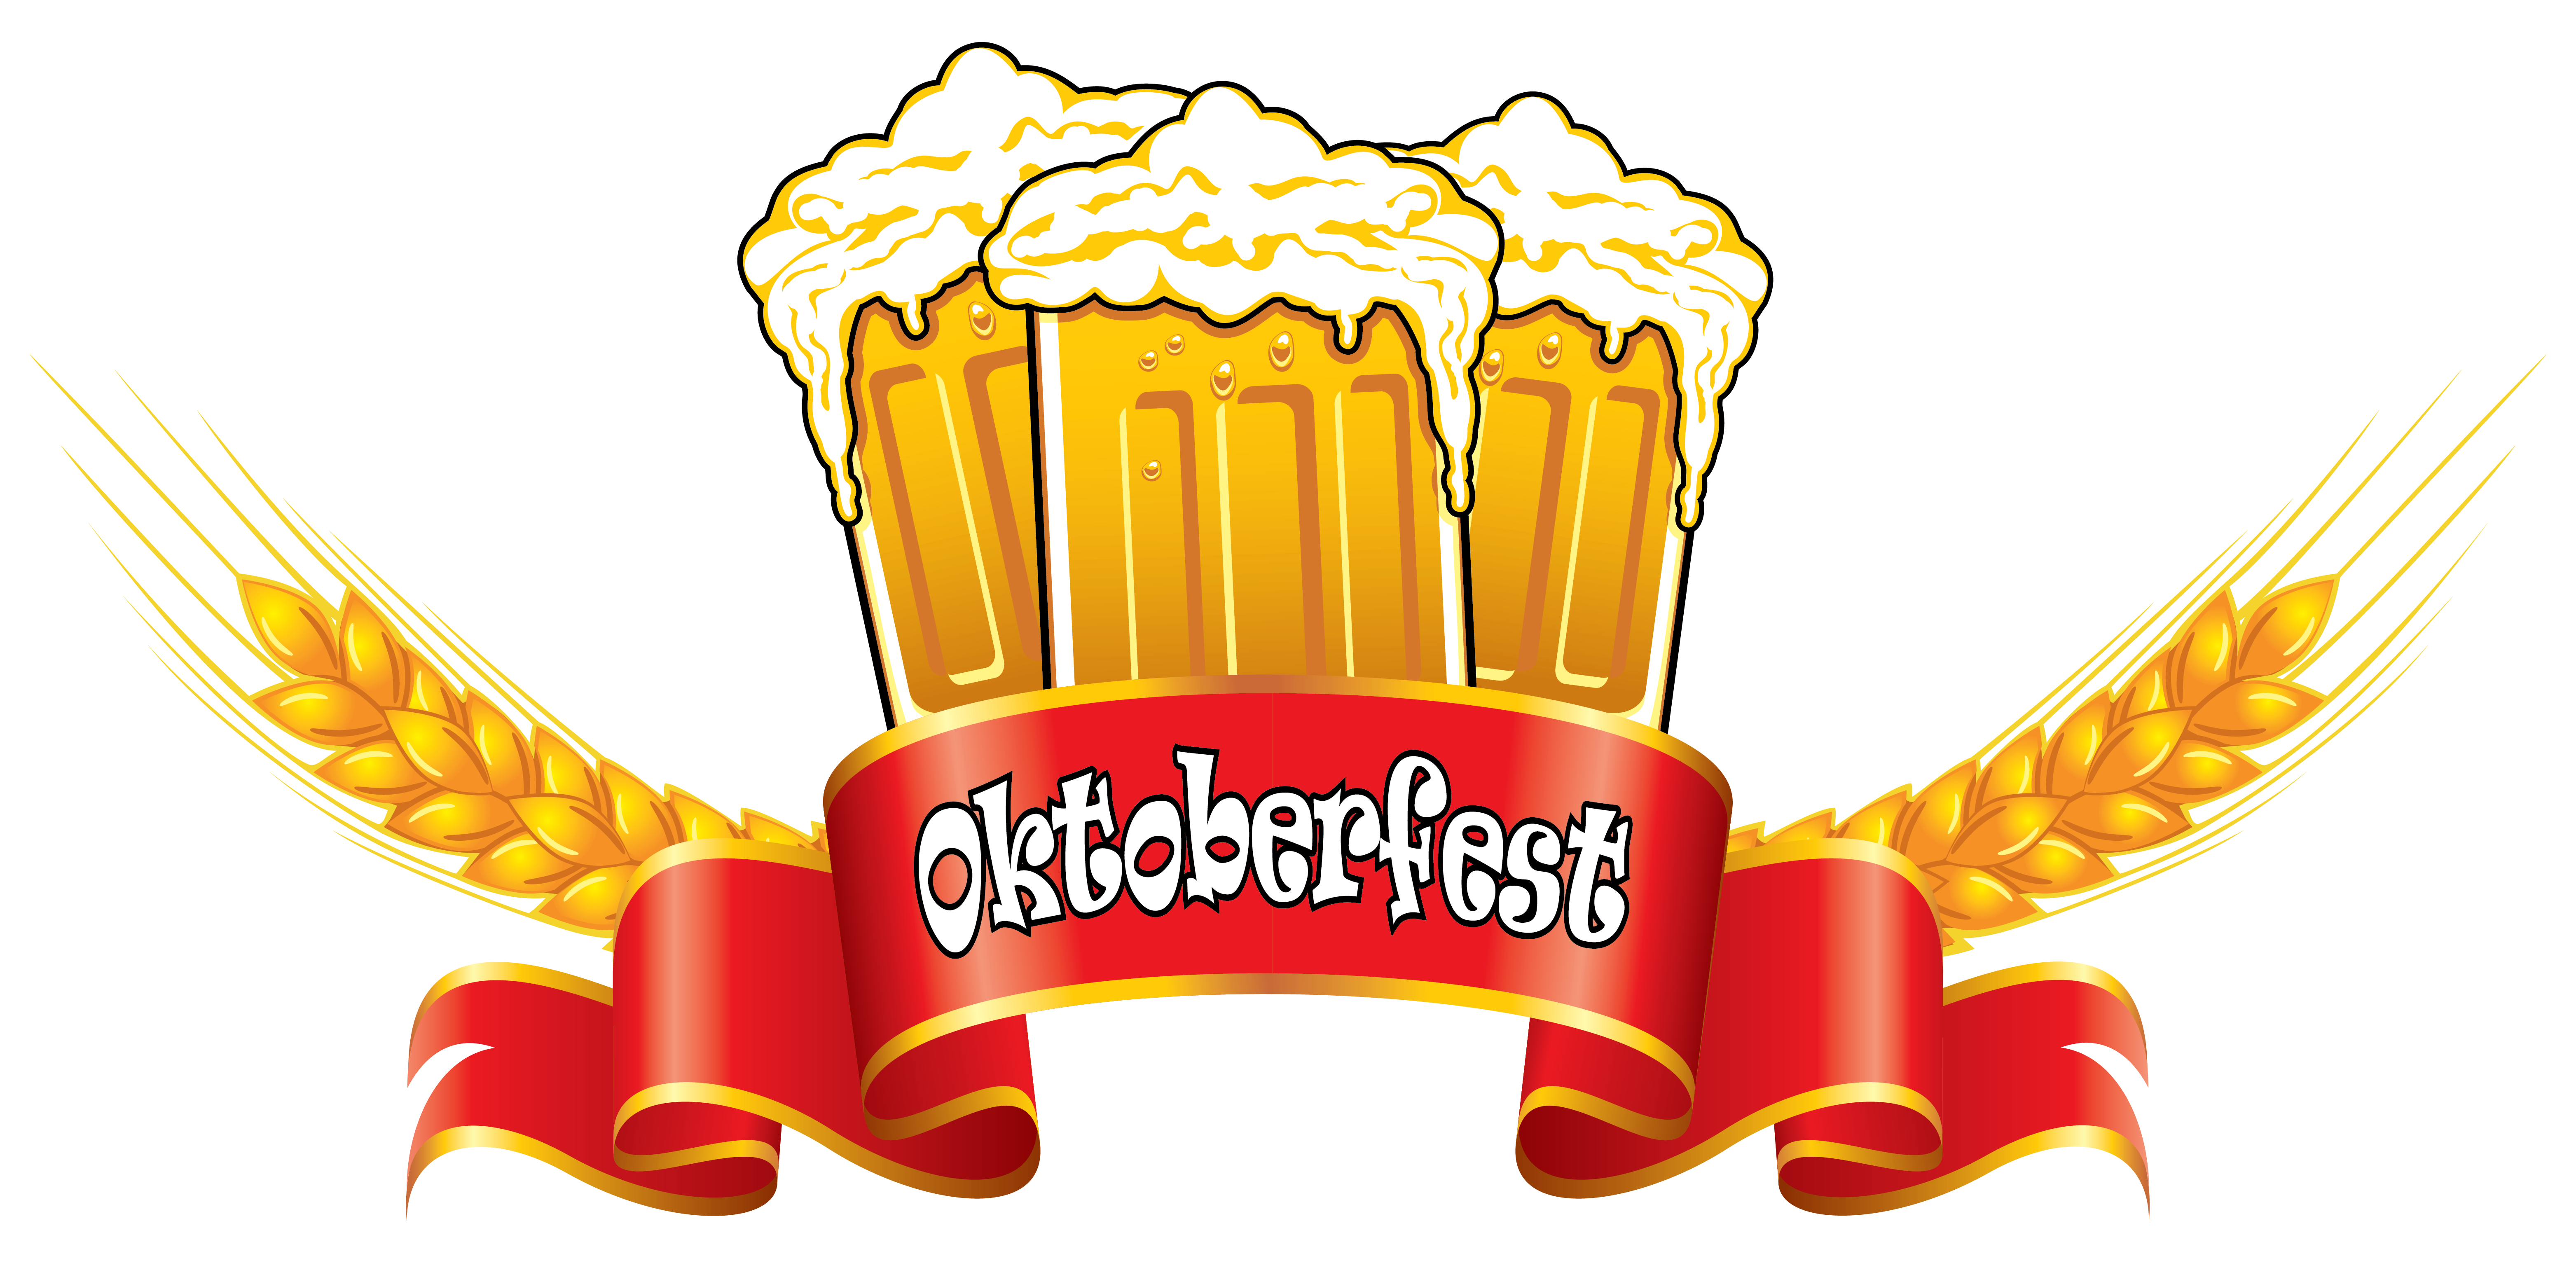 Foods clipart banner. Oktoberfest red with beer